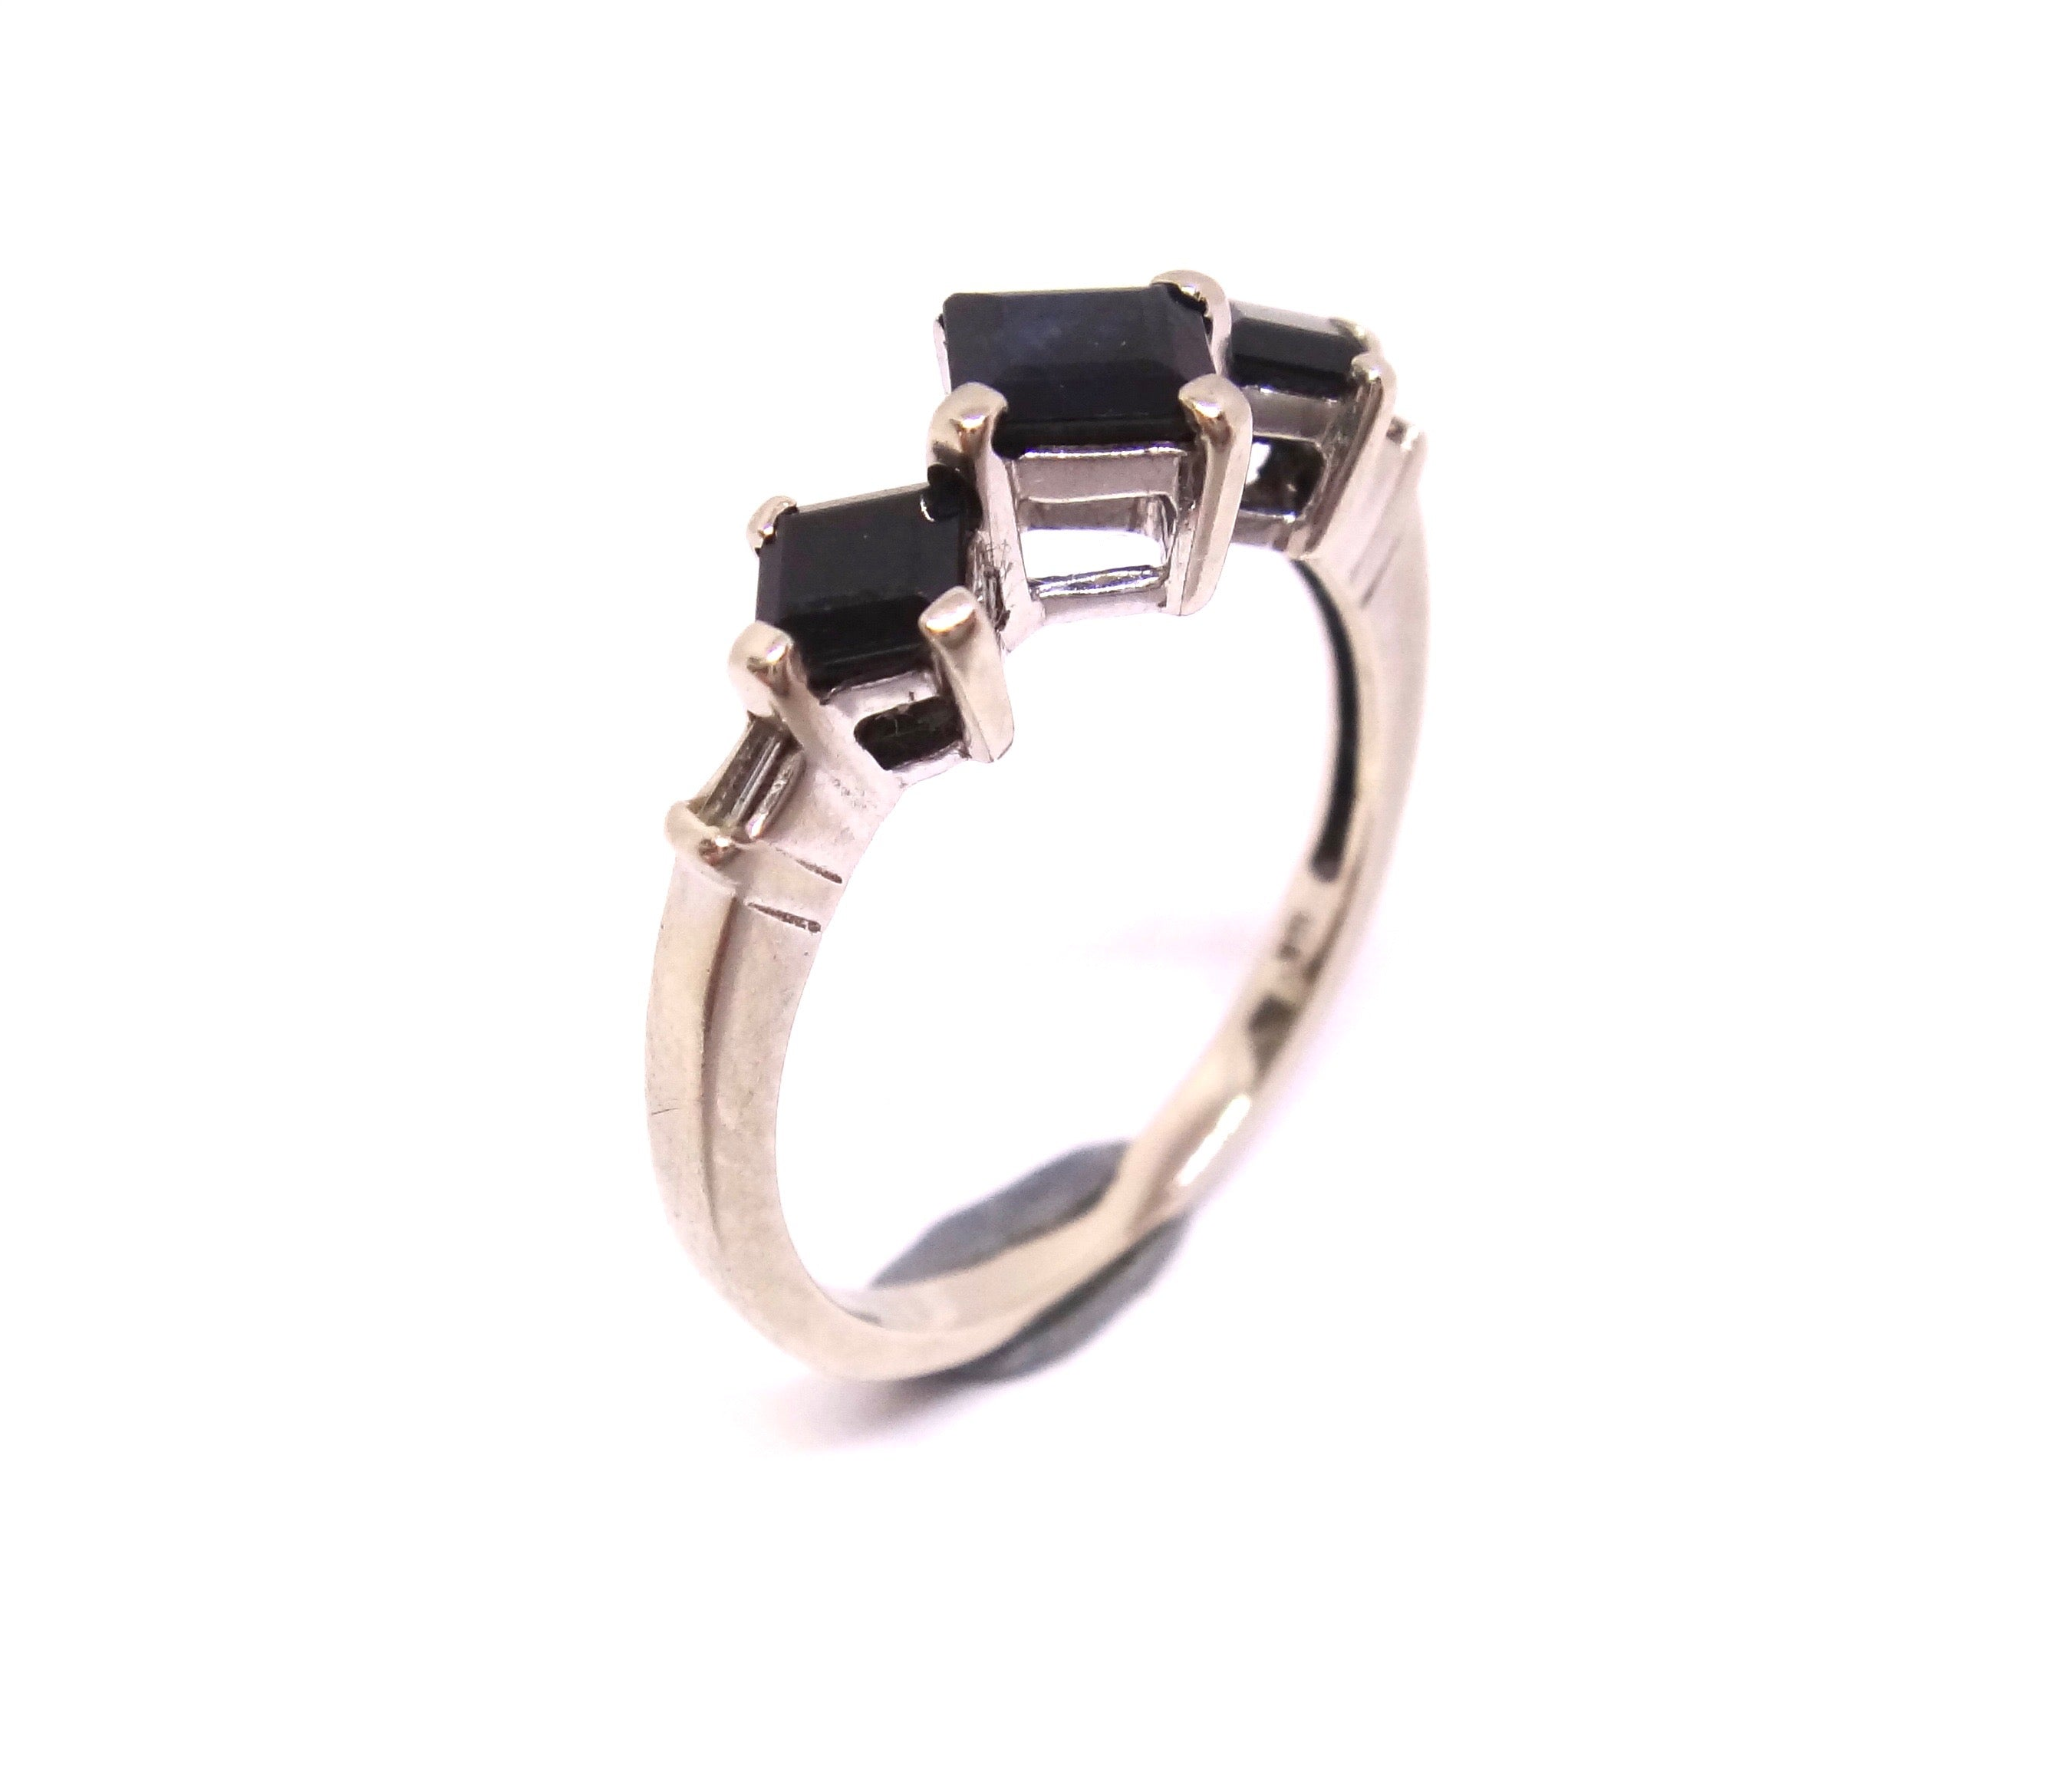 10CT White GOLD, Diamond & 3 Stone Dark Blue Sapphire Ring